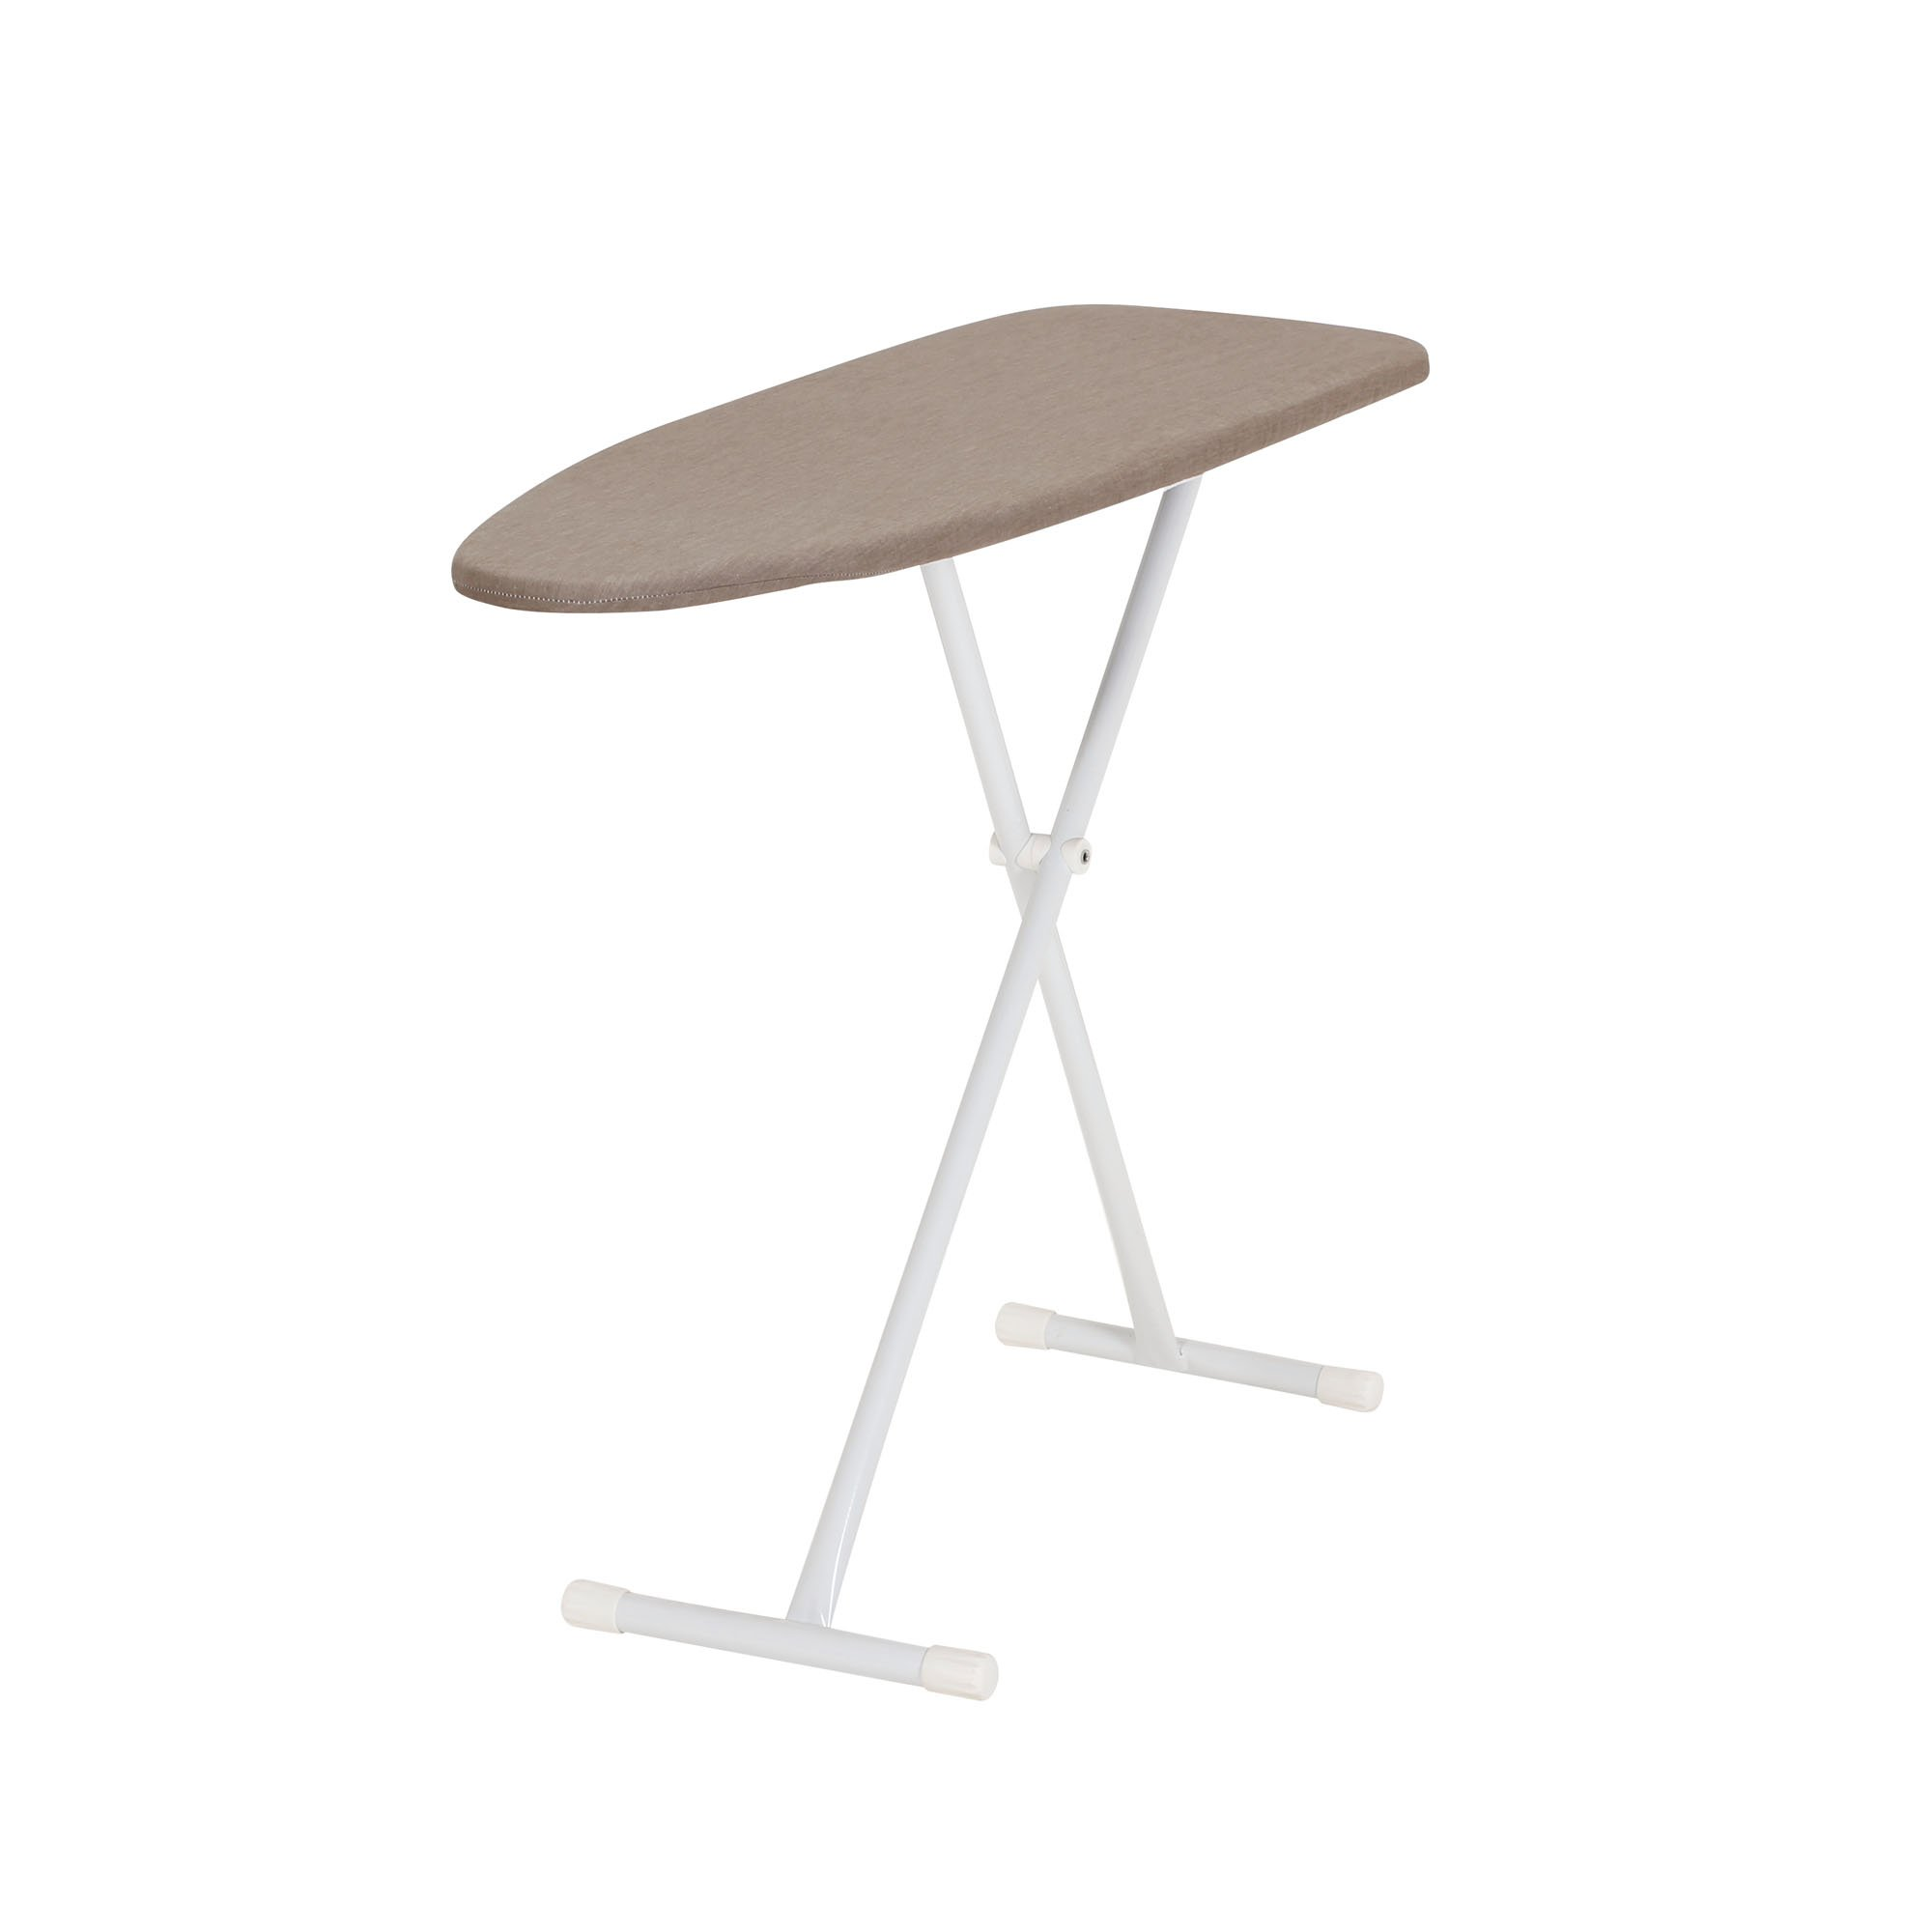 Household Essentials 201345 Armoire Ironing Board Plastic Top